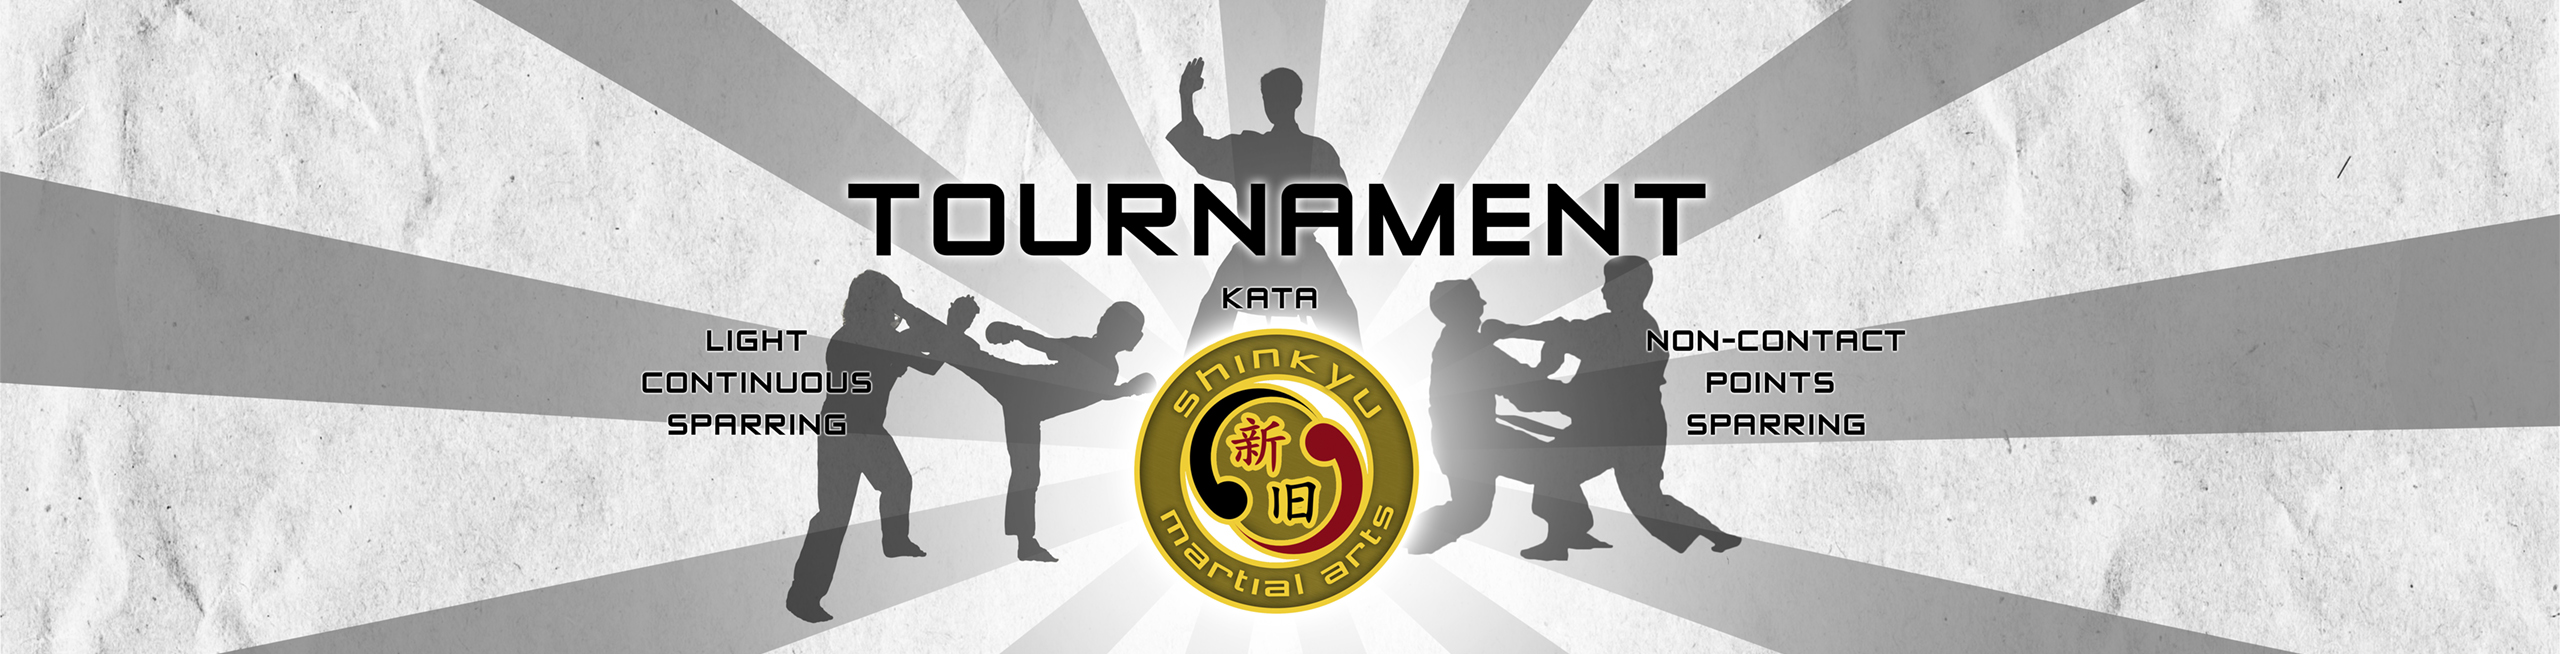 martial arts website tournament slider